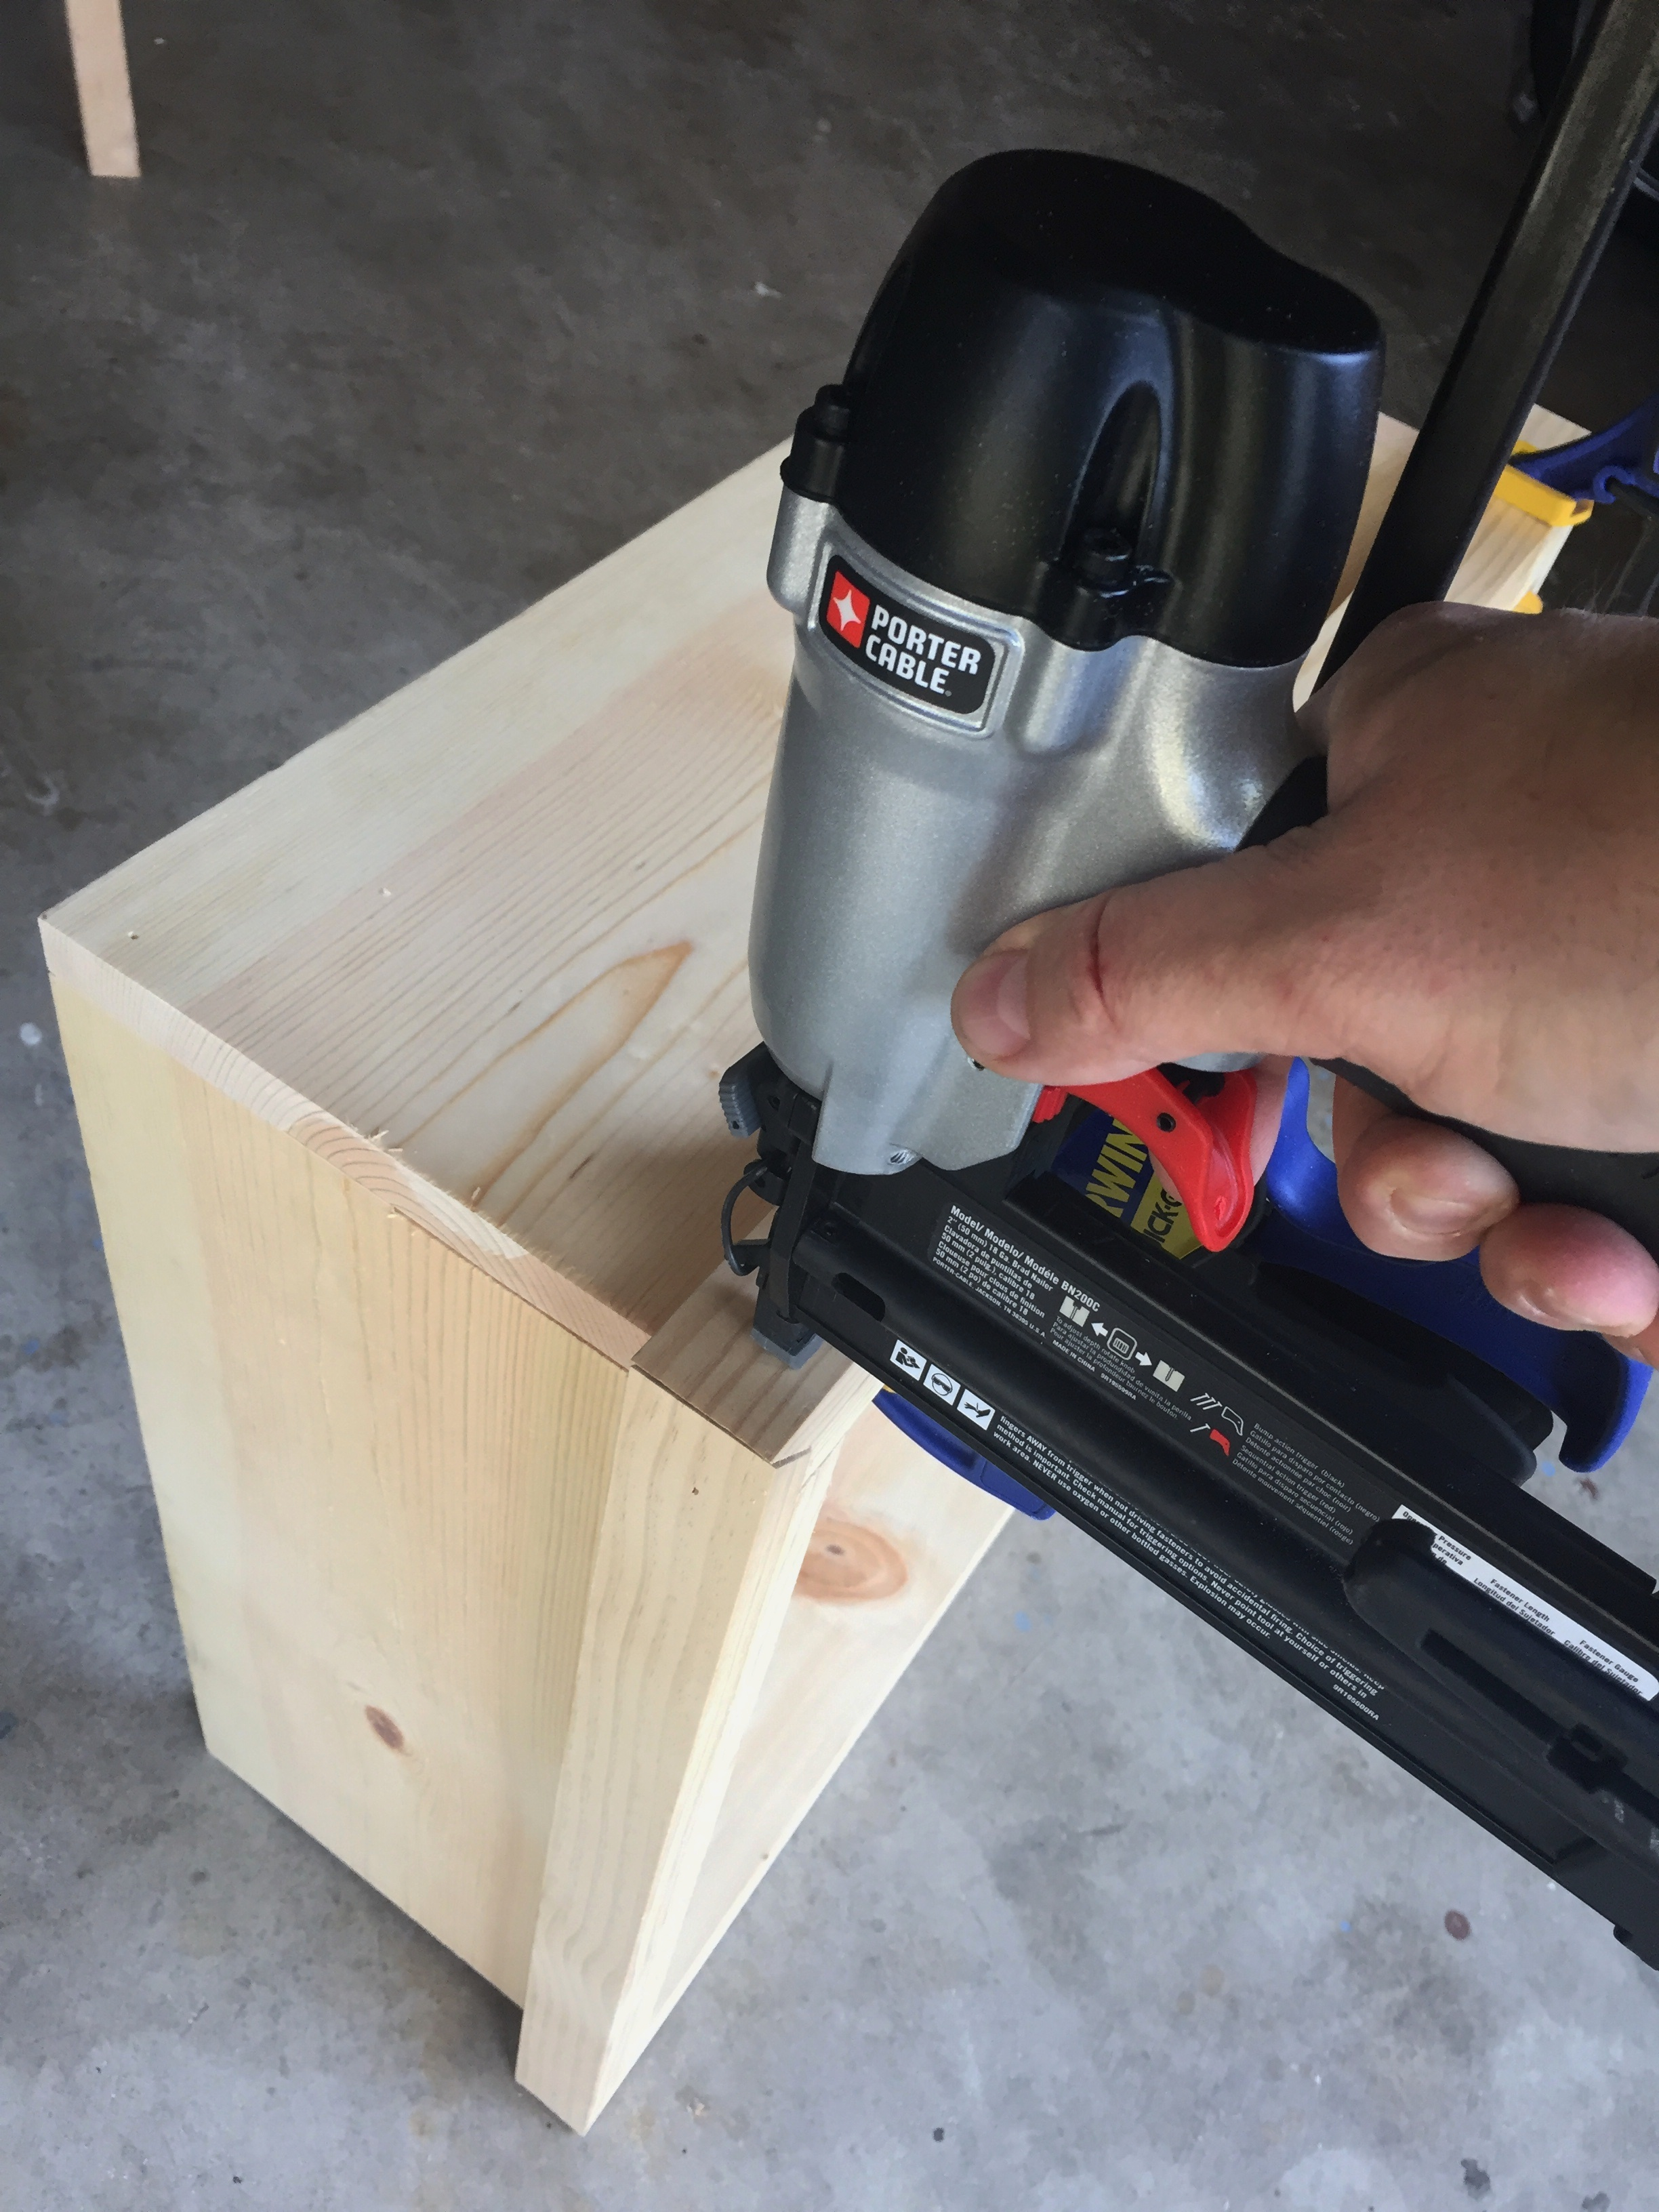 Use a Brad NAiler to Connect the Trim to the Box